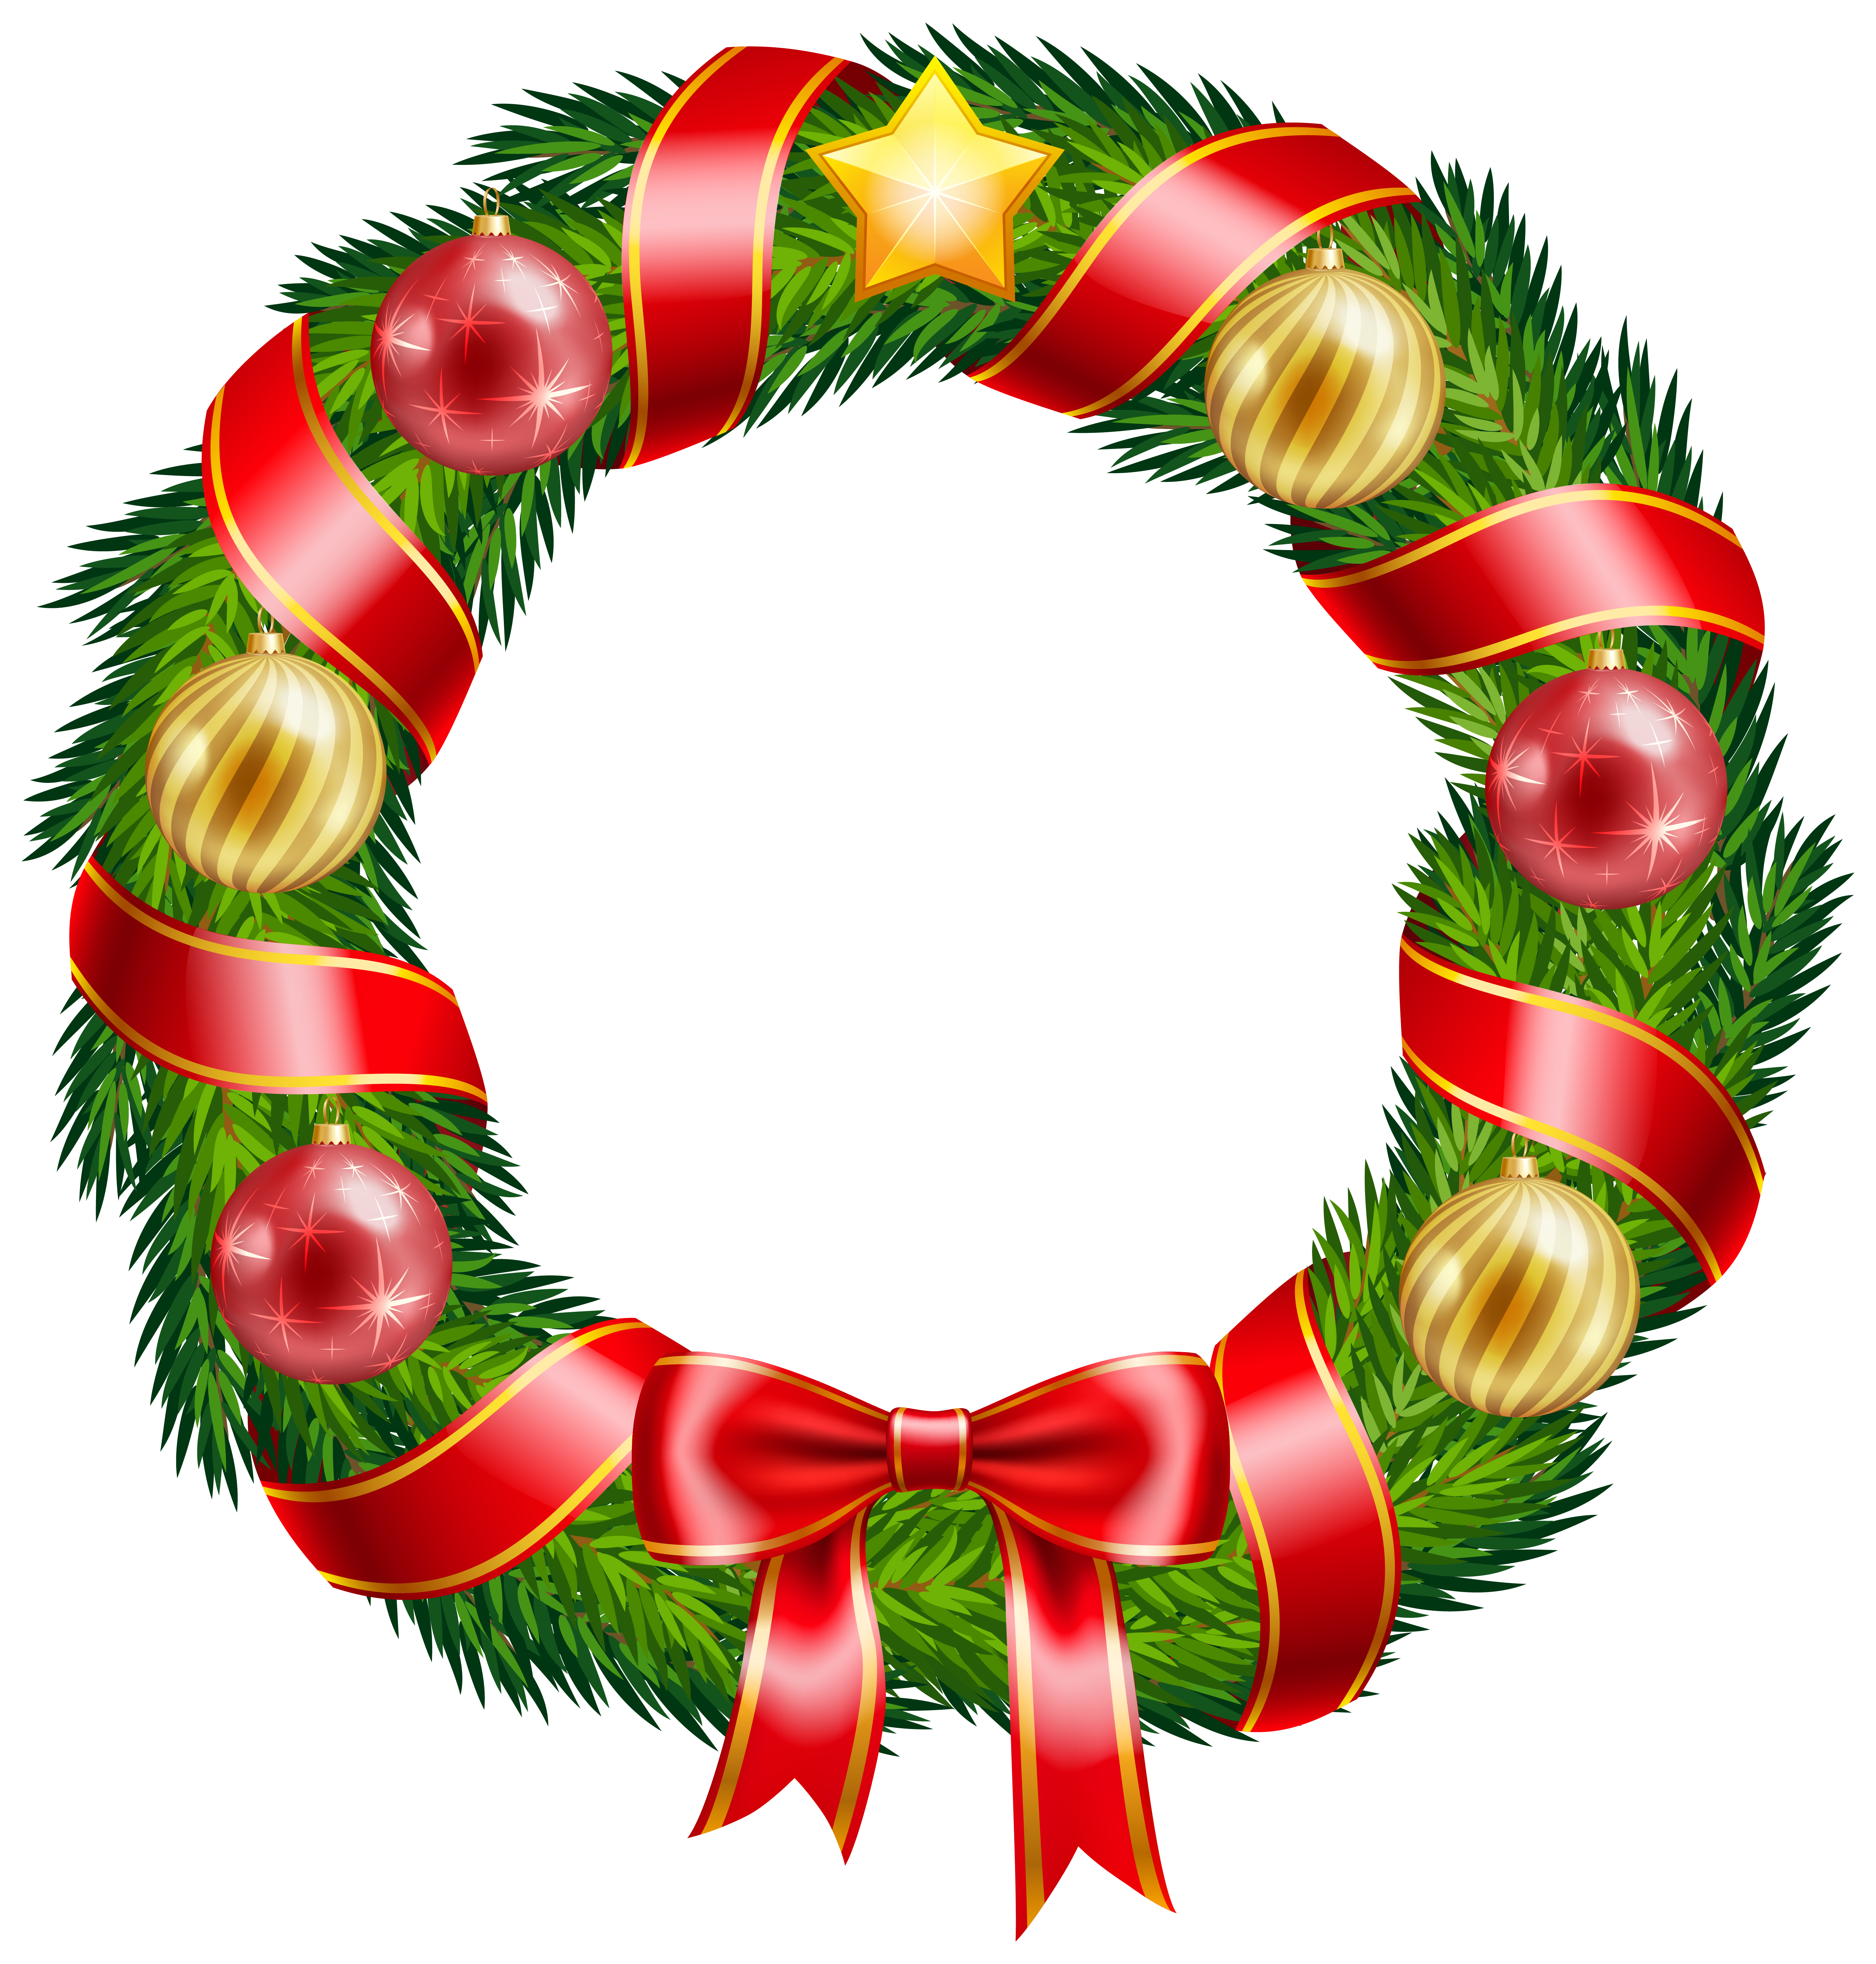 Holiday Wreath Clipart | Free download on ClipArtMag